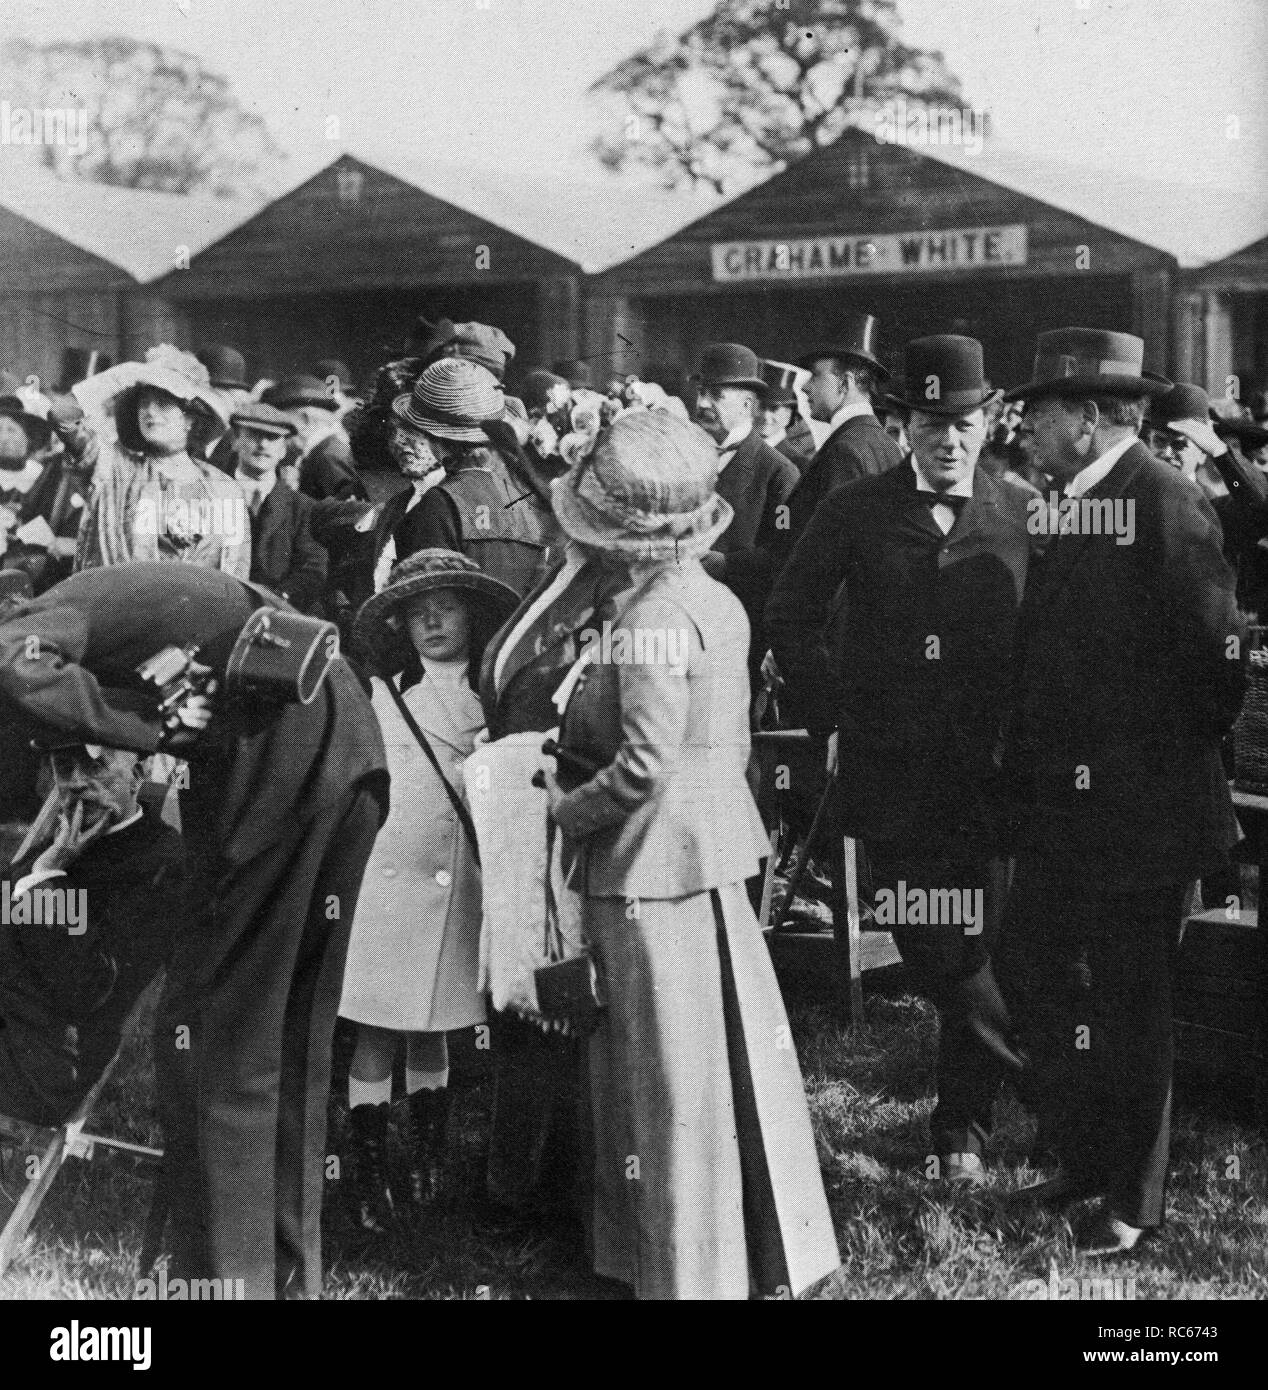 Winston Churchill convering with Lord Northcliffe at the Hendon Aviation Meeting, 12th May 1911 - Stock Image